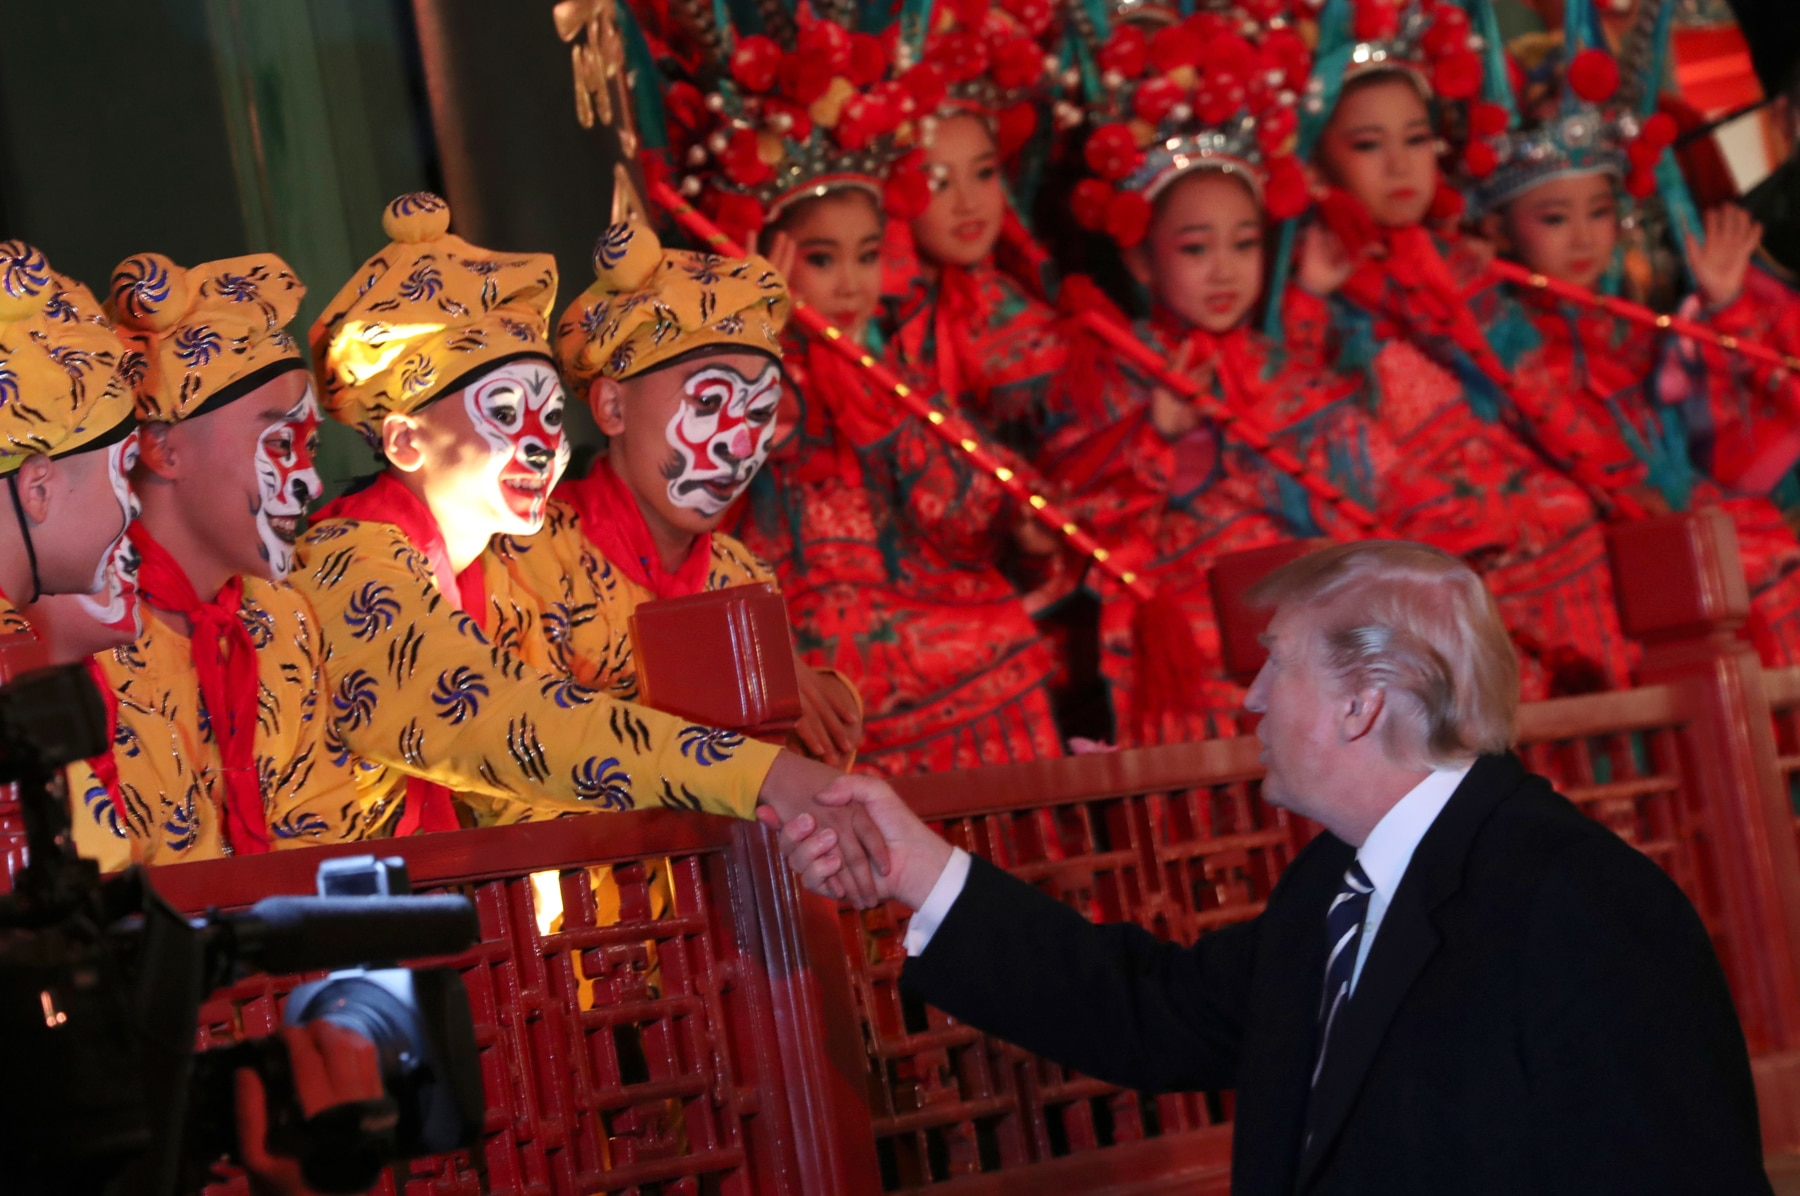 President Trump shaking hands with opera performers (© AP Images)